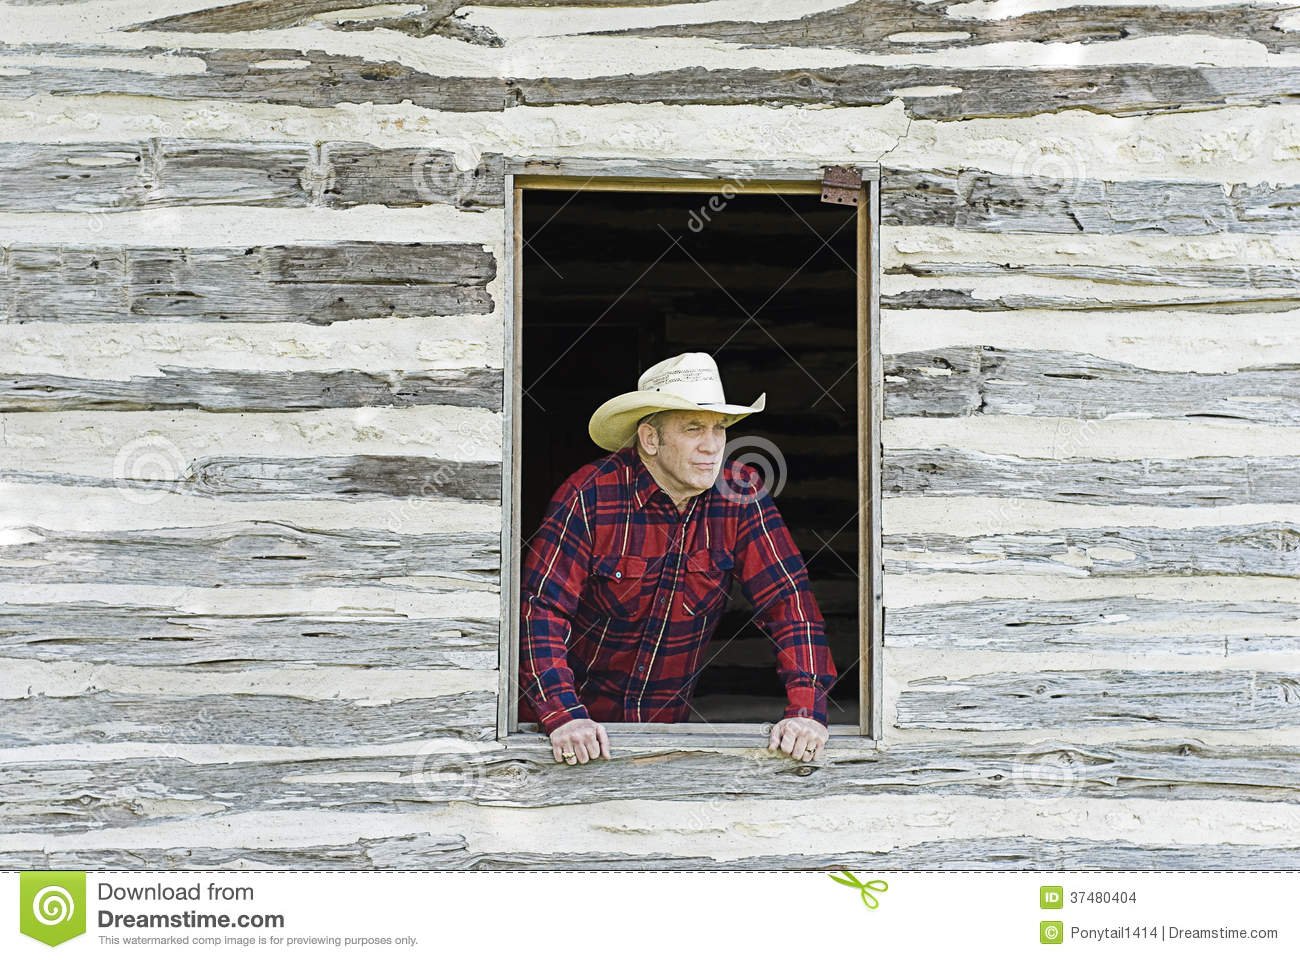 Cowboy Looking Out a Window